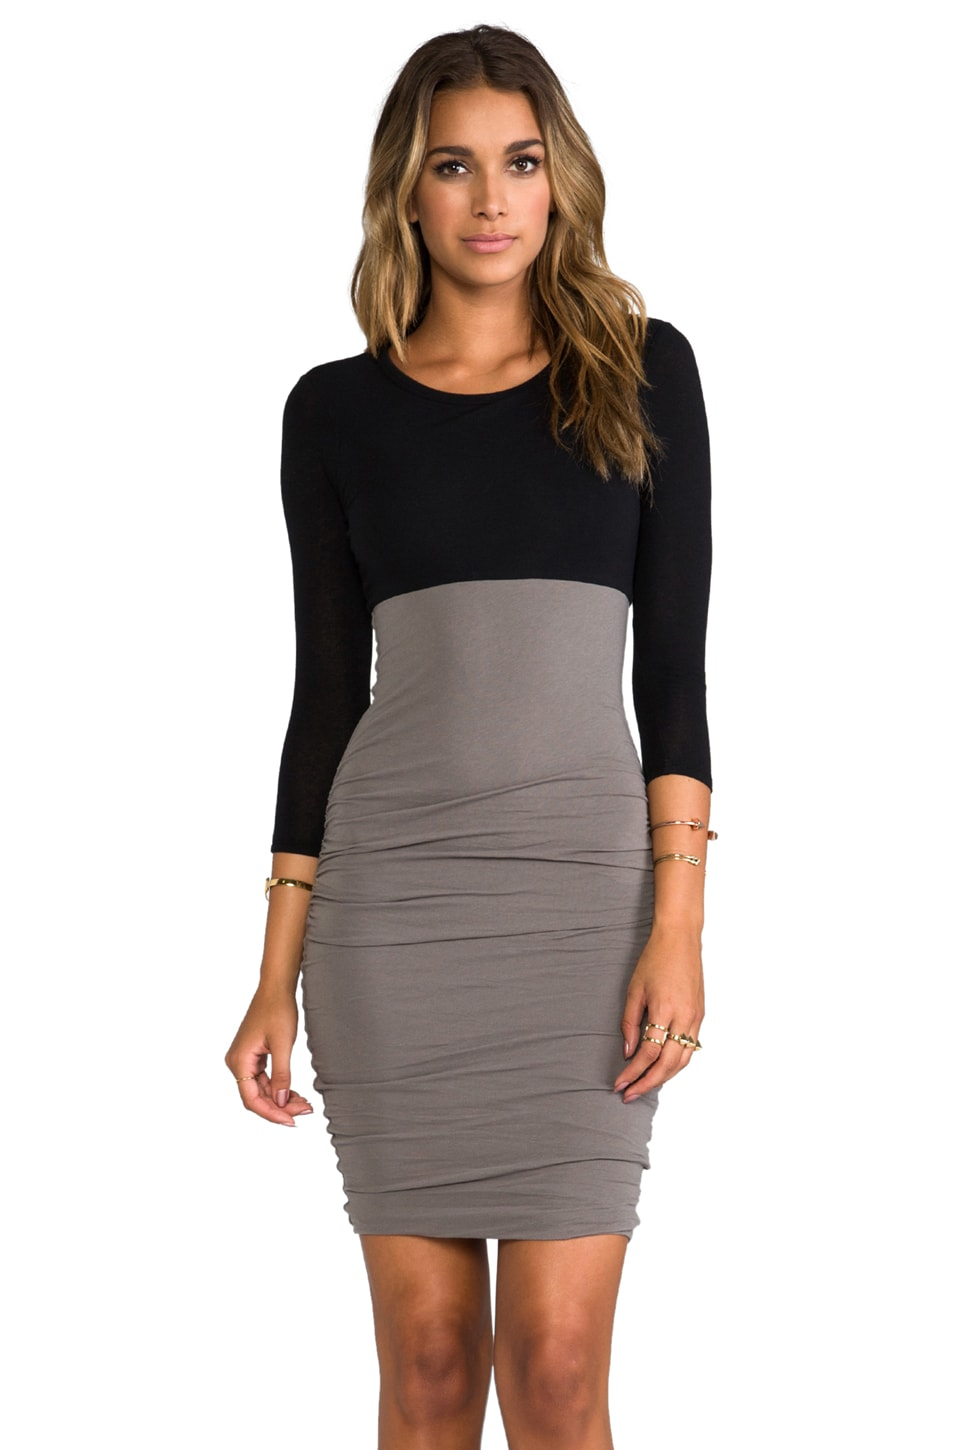 James Perse Colorblocked Skinny Dress in Black/Spruce